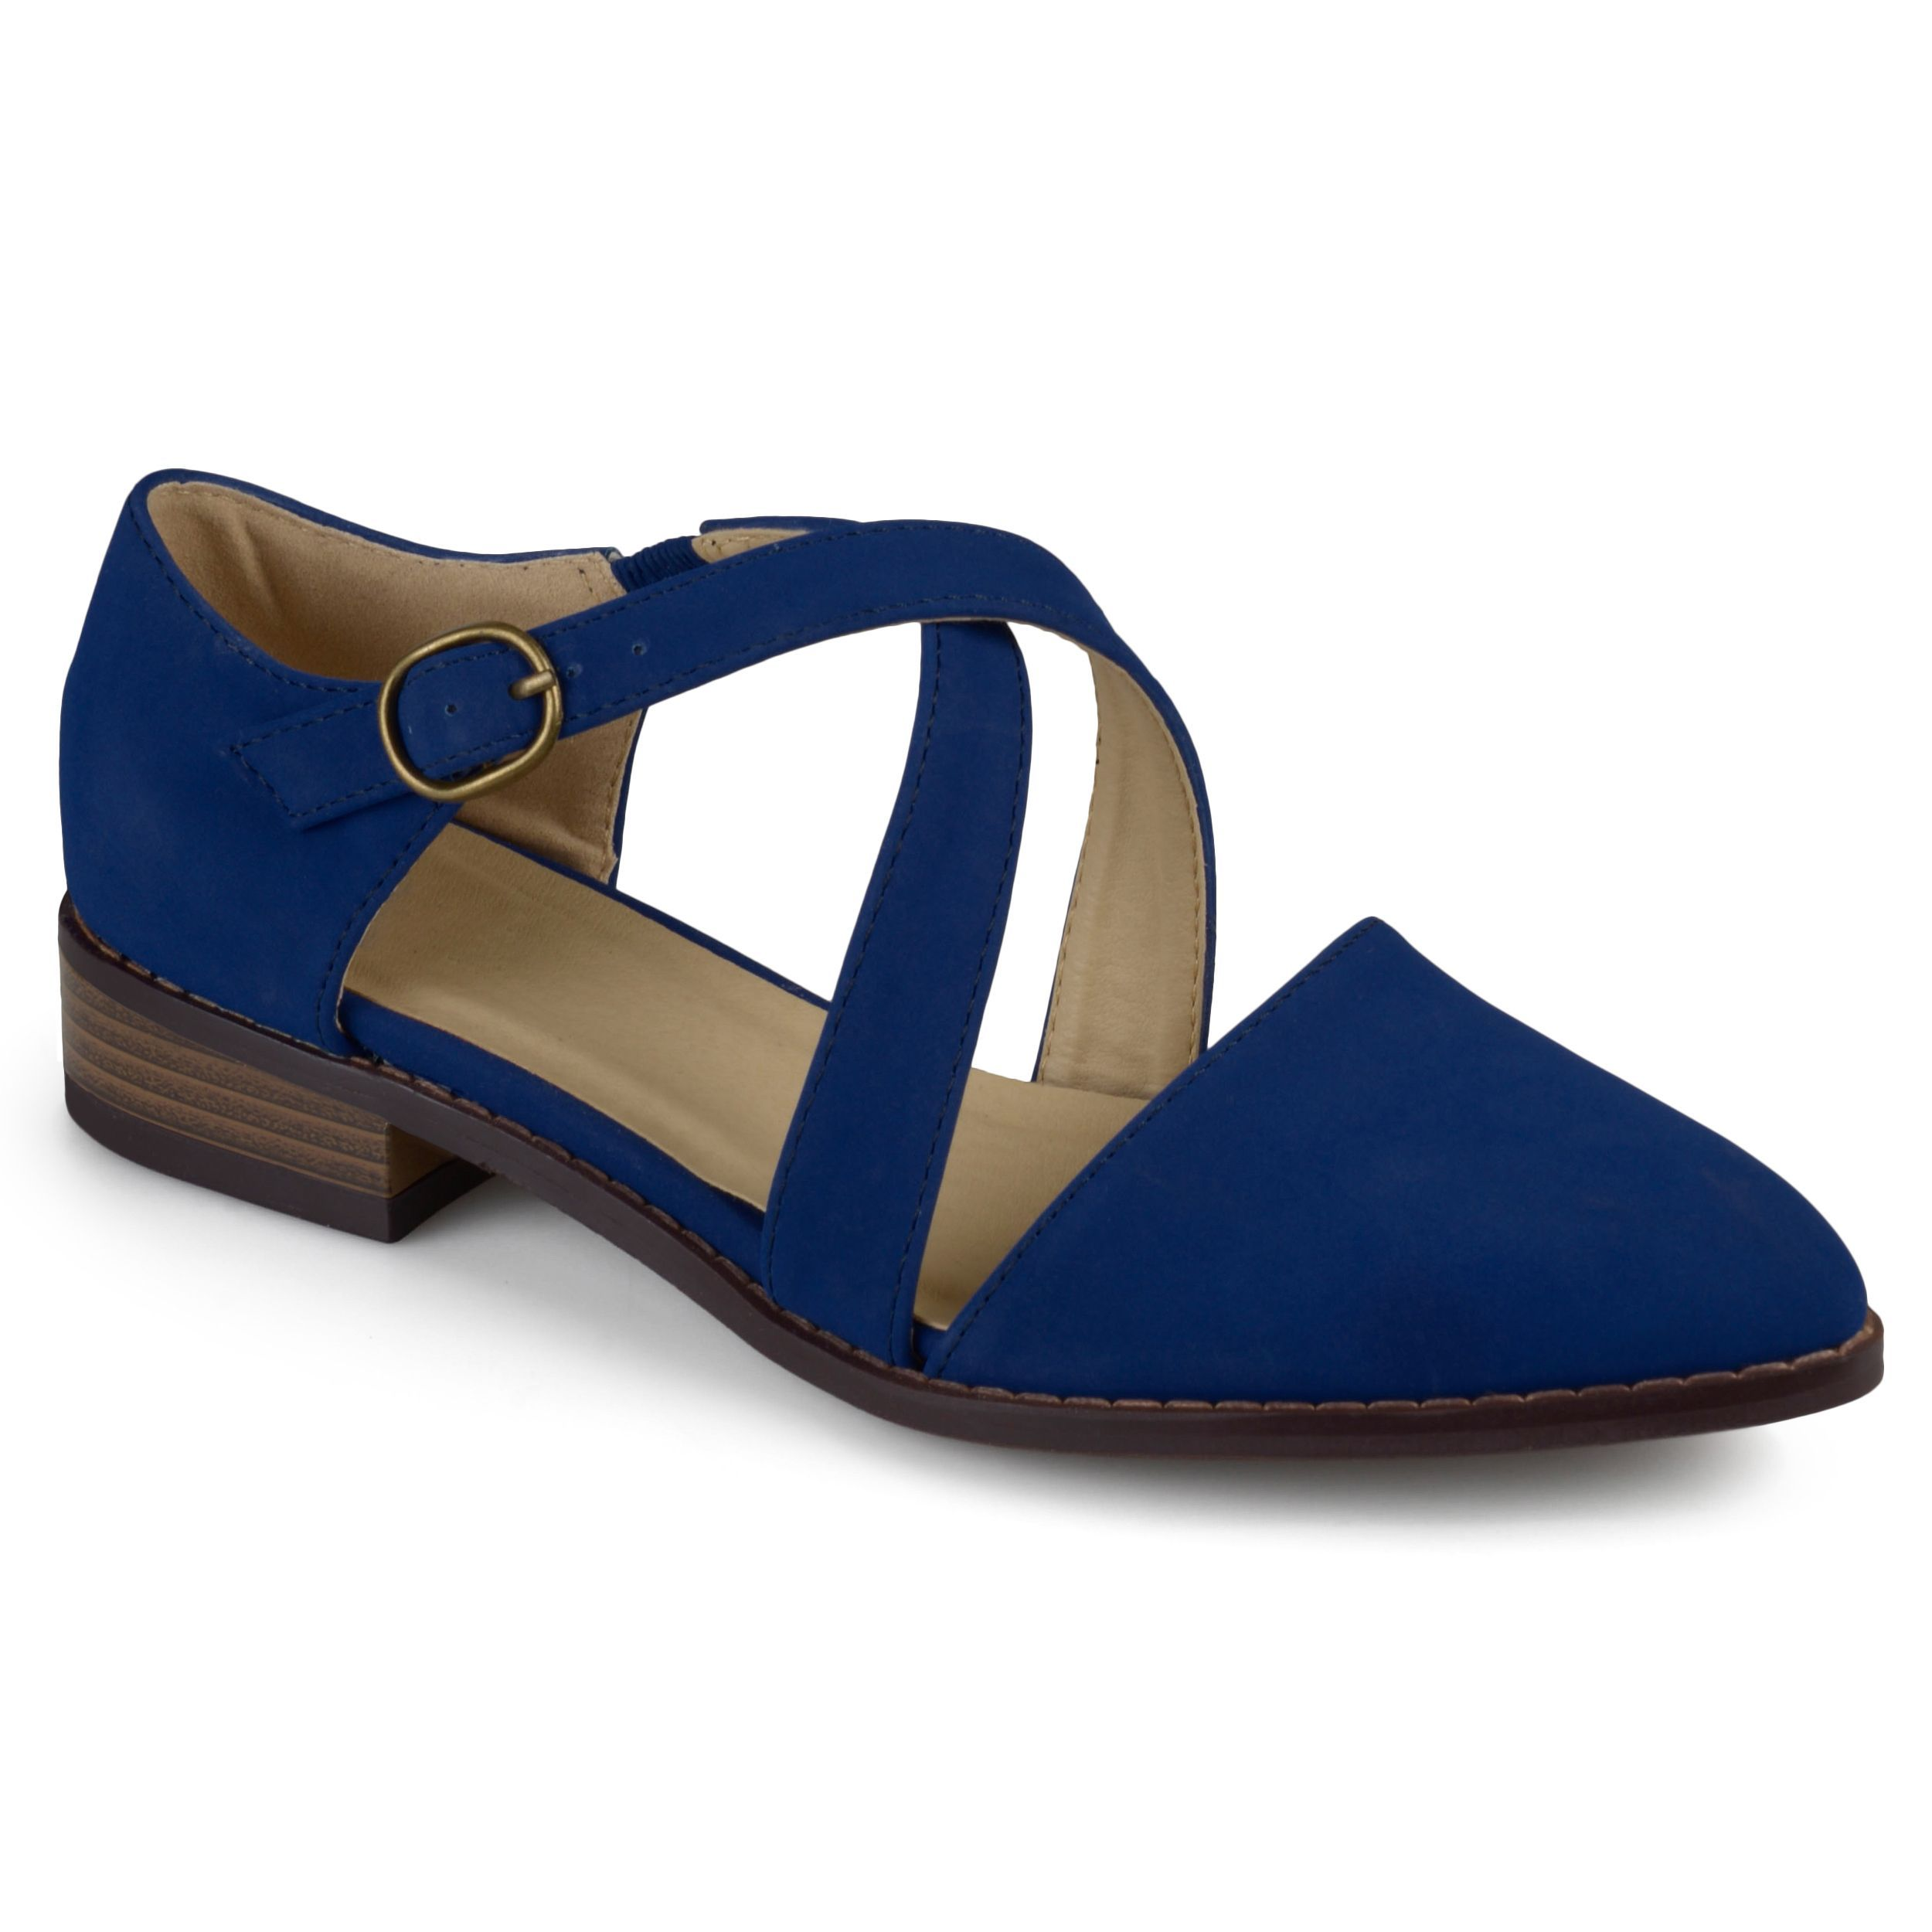 recommend sale online ELINA Brown Flats low shipping fee for sale clearance outlet locations BDreawccKi